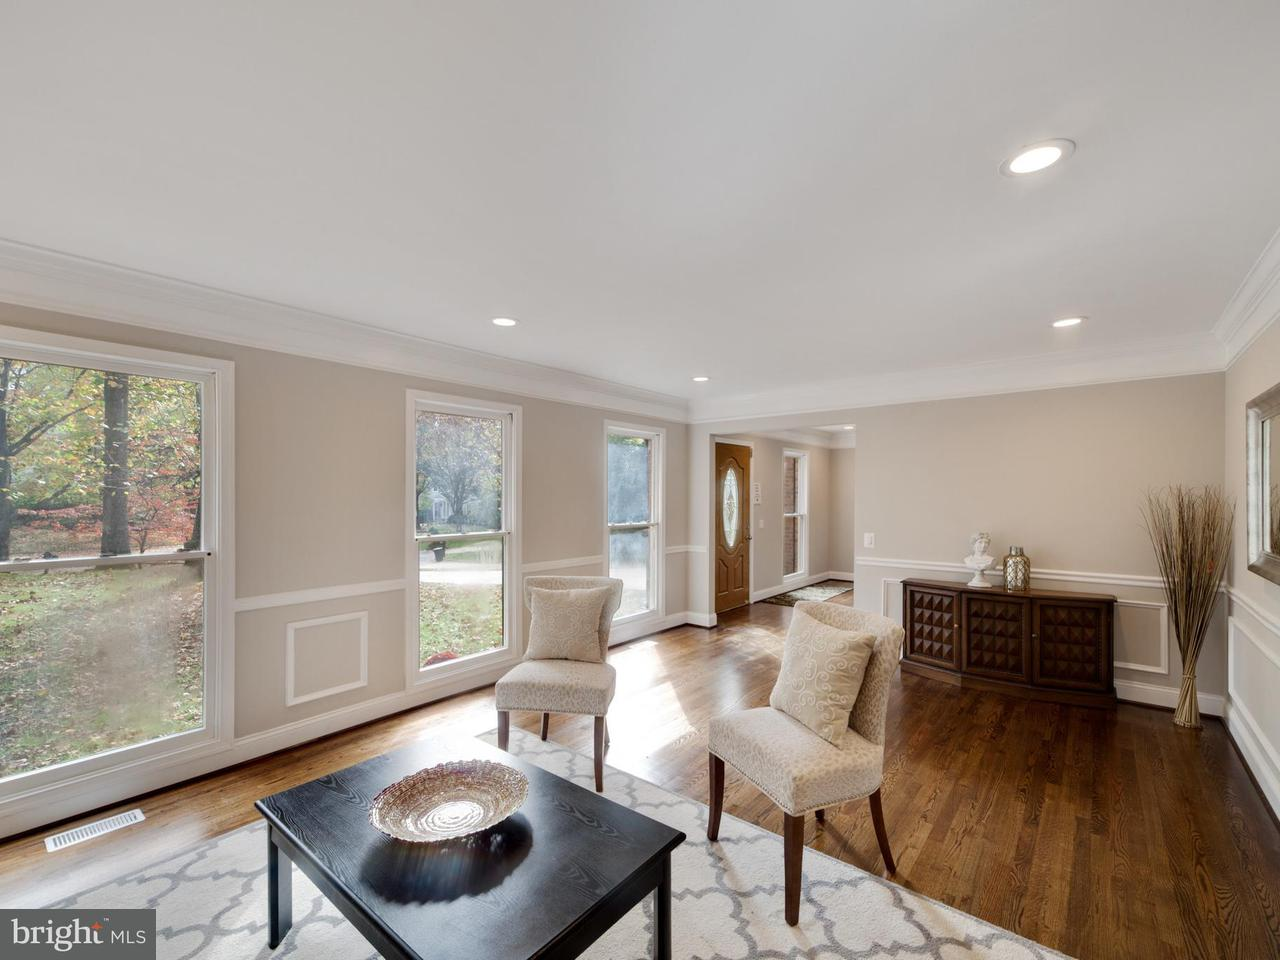 Single Family Home for Sale at 11301 CLASSICAL Lane 11301 CLASSICAL Lane Silver Spring, Maryland 20901 United States